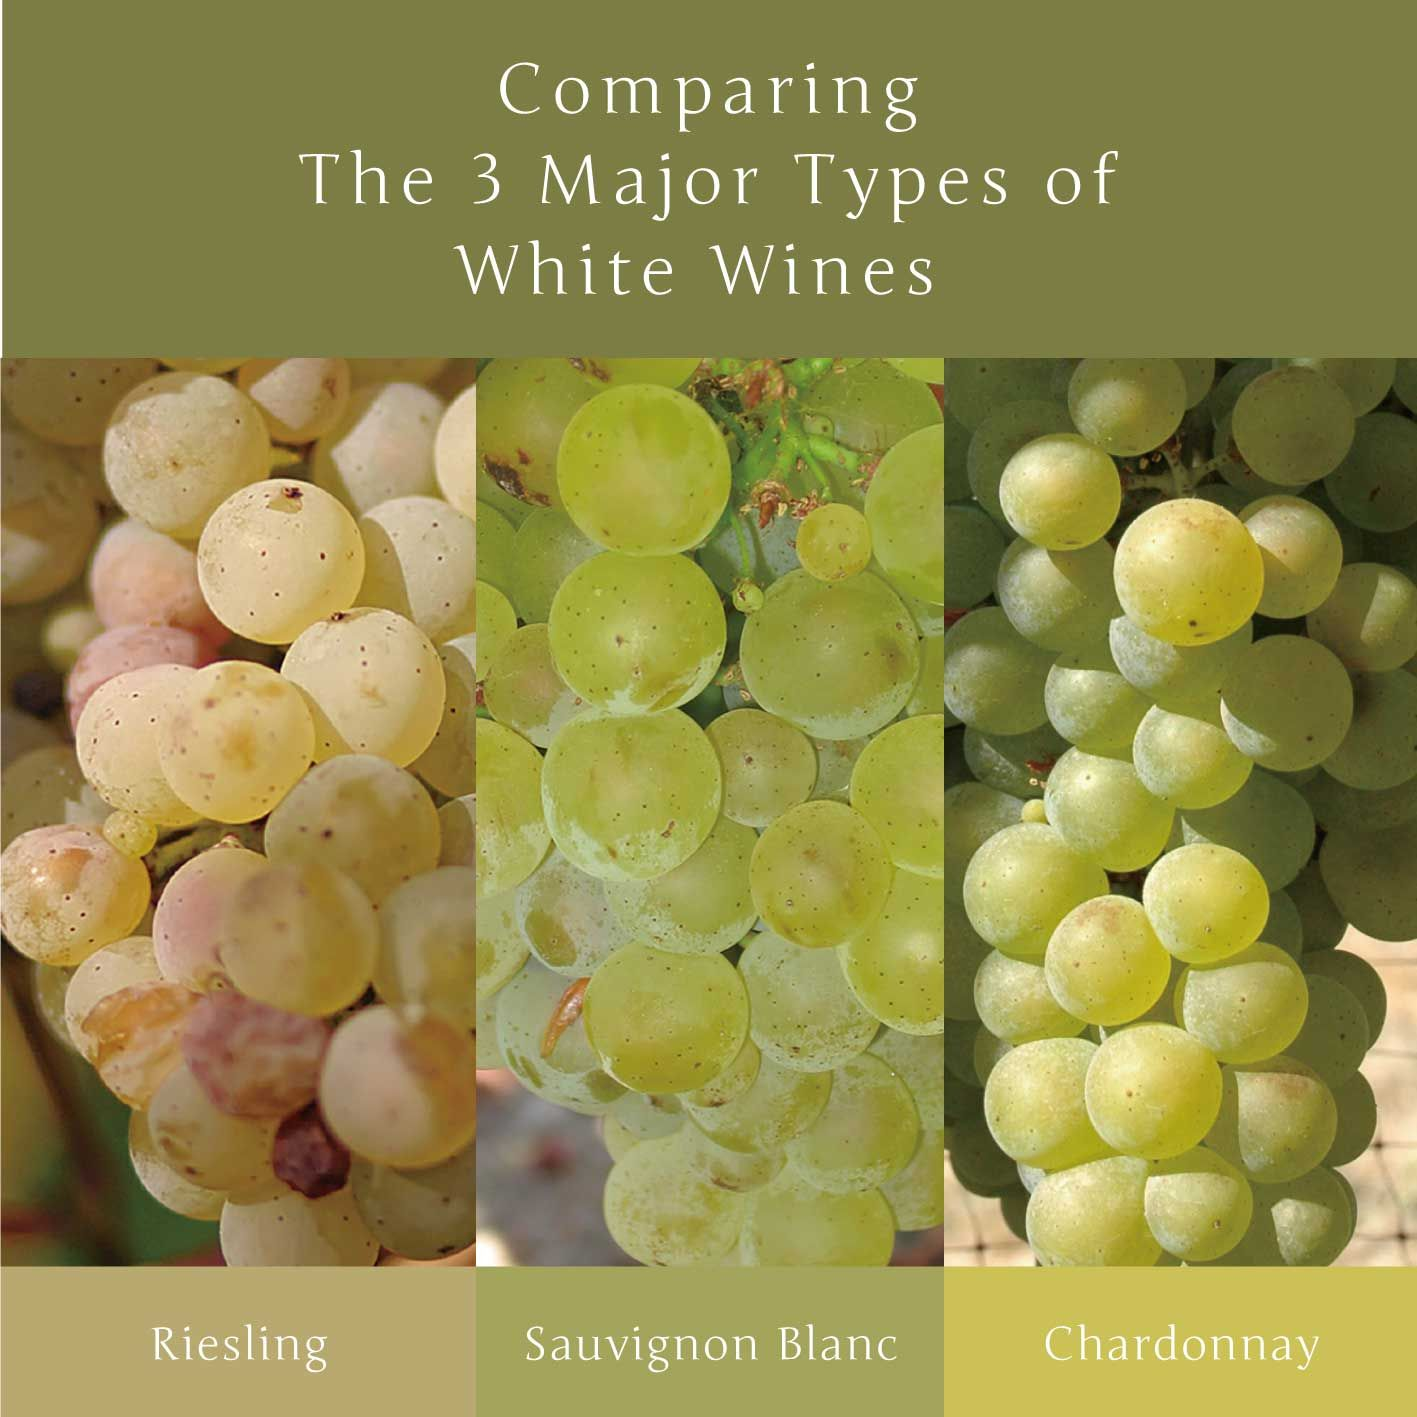 Comparing The 3 Major Types of White Wines  3大 白ワイン品種 飲み比べフェア